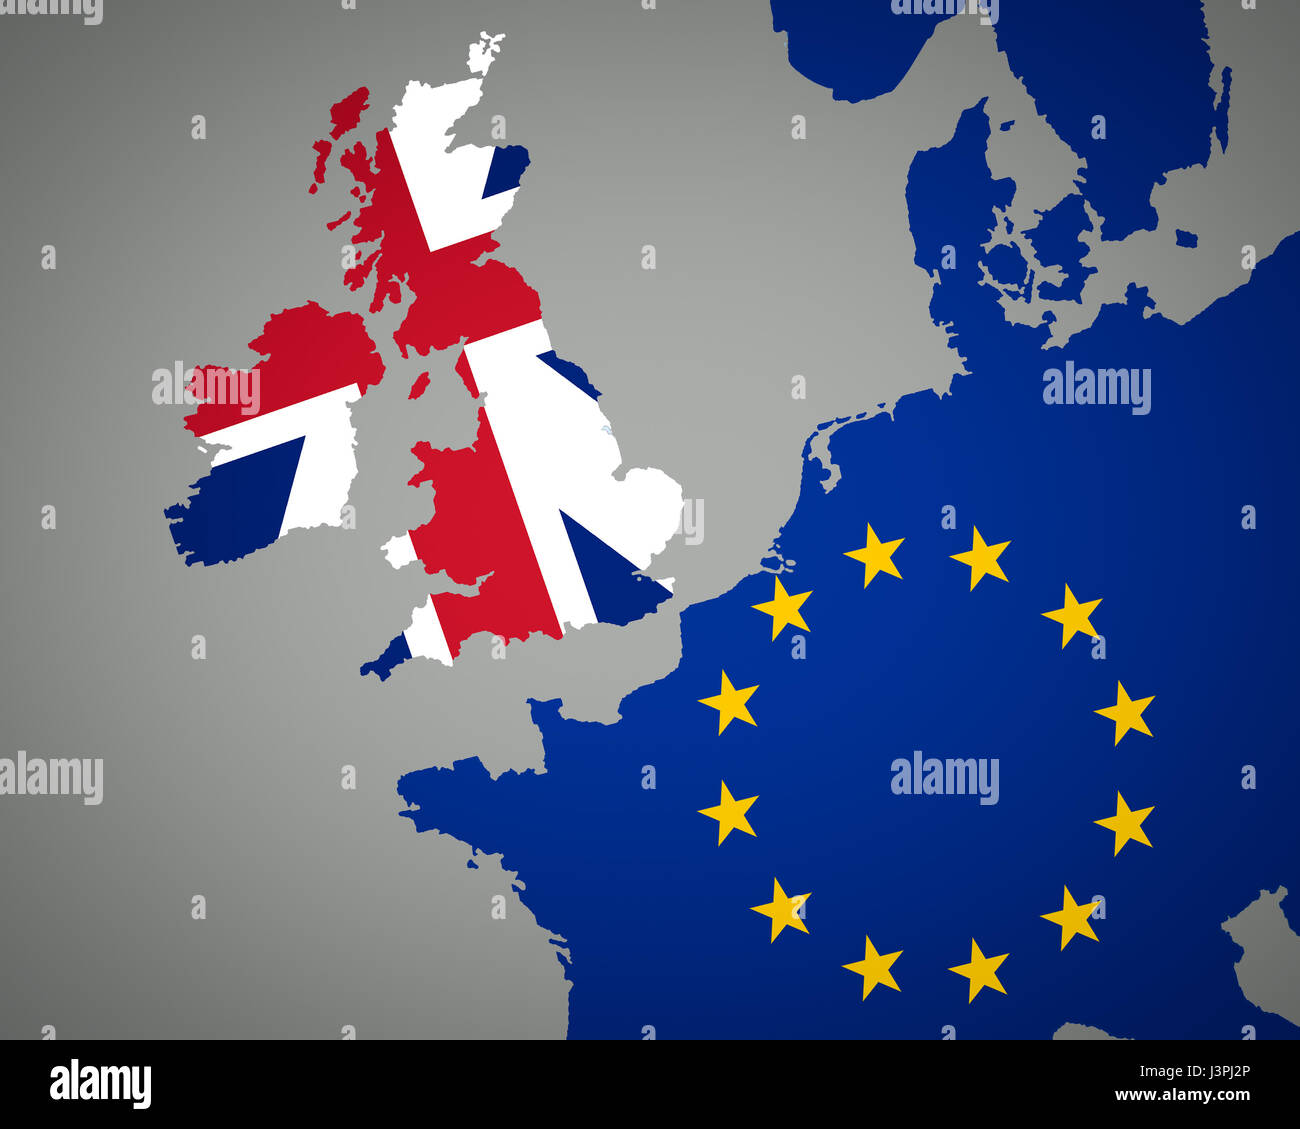 map of europe with union jack for england and eu flag for europe